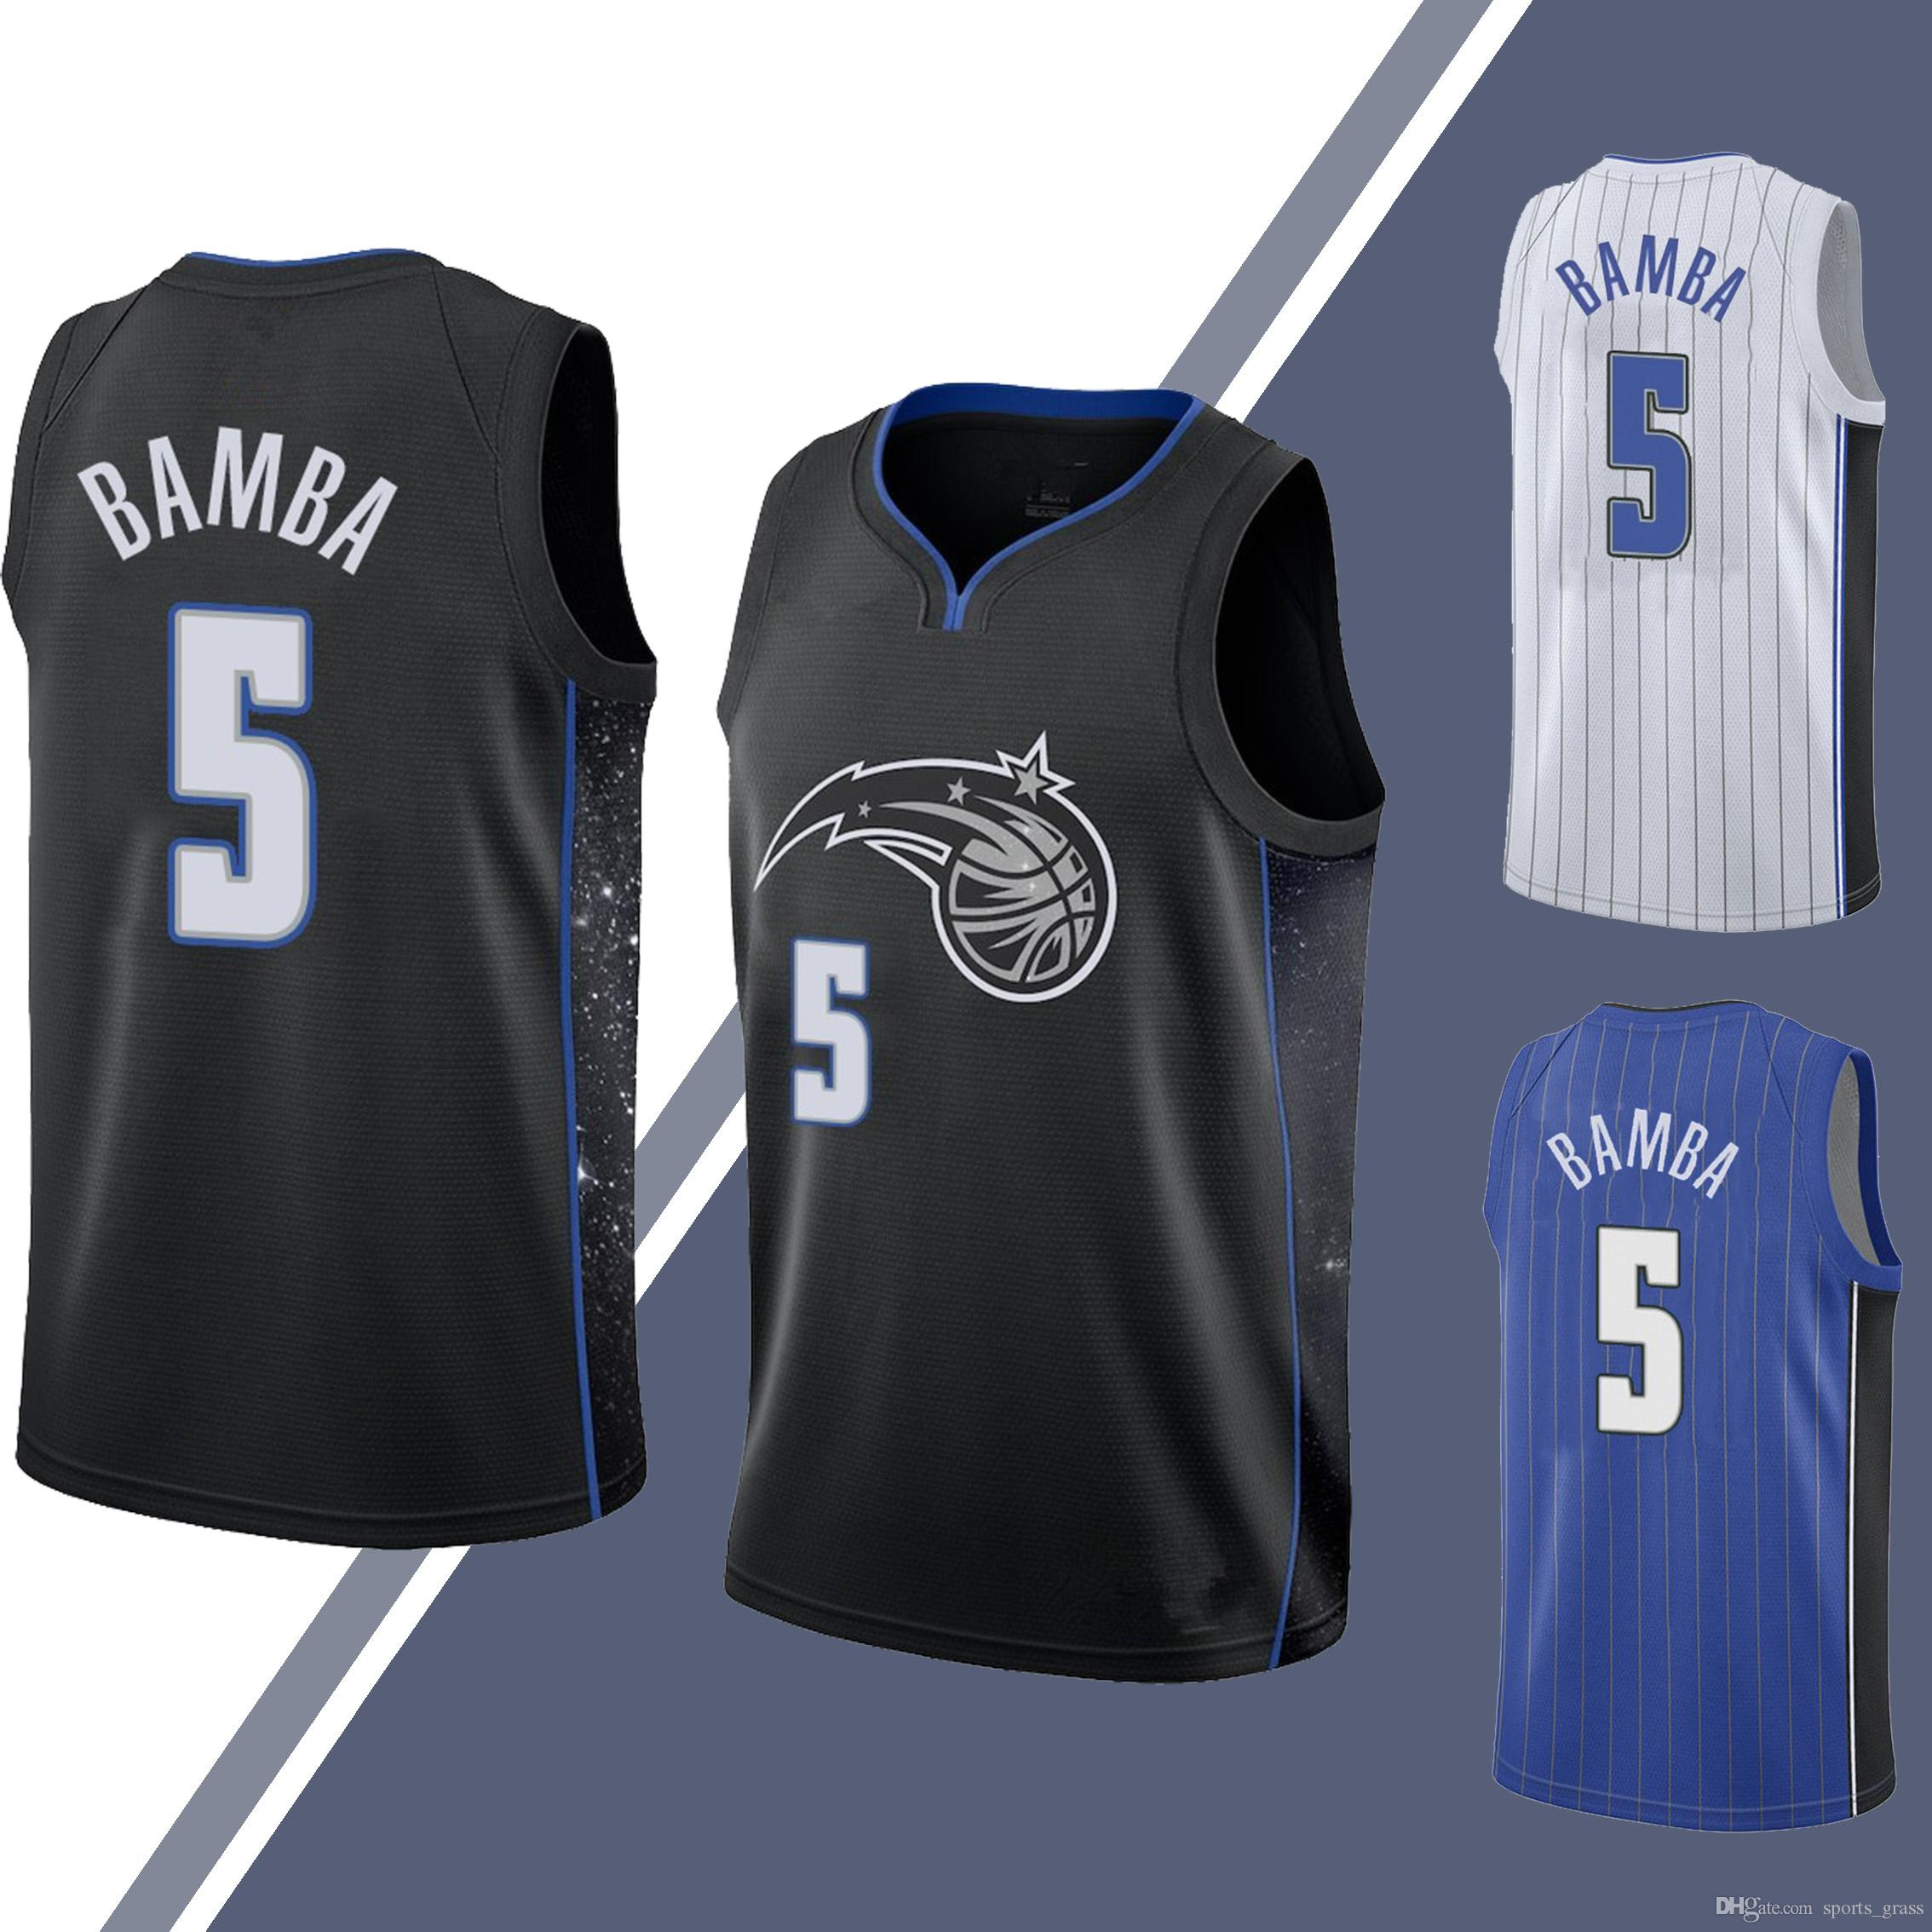 check out 04f0e aa4cc Mohamed 5 Bamba jersey Tracy 1 Mcgrady Shaquille 32 O Neal Tim 1 Hardaway  retro jerseys